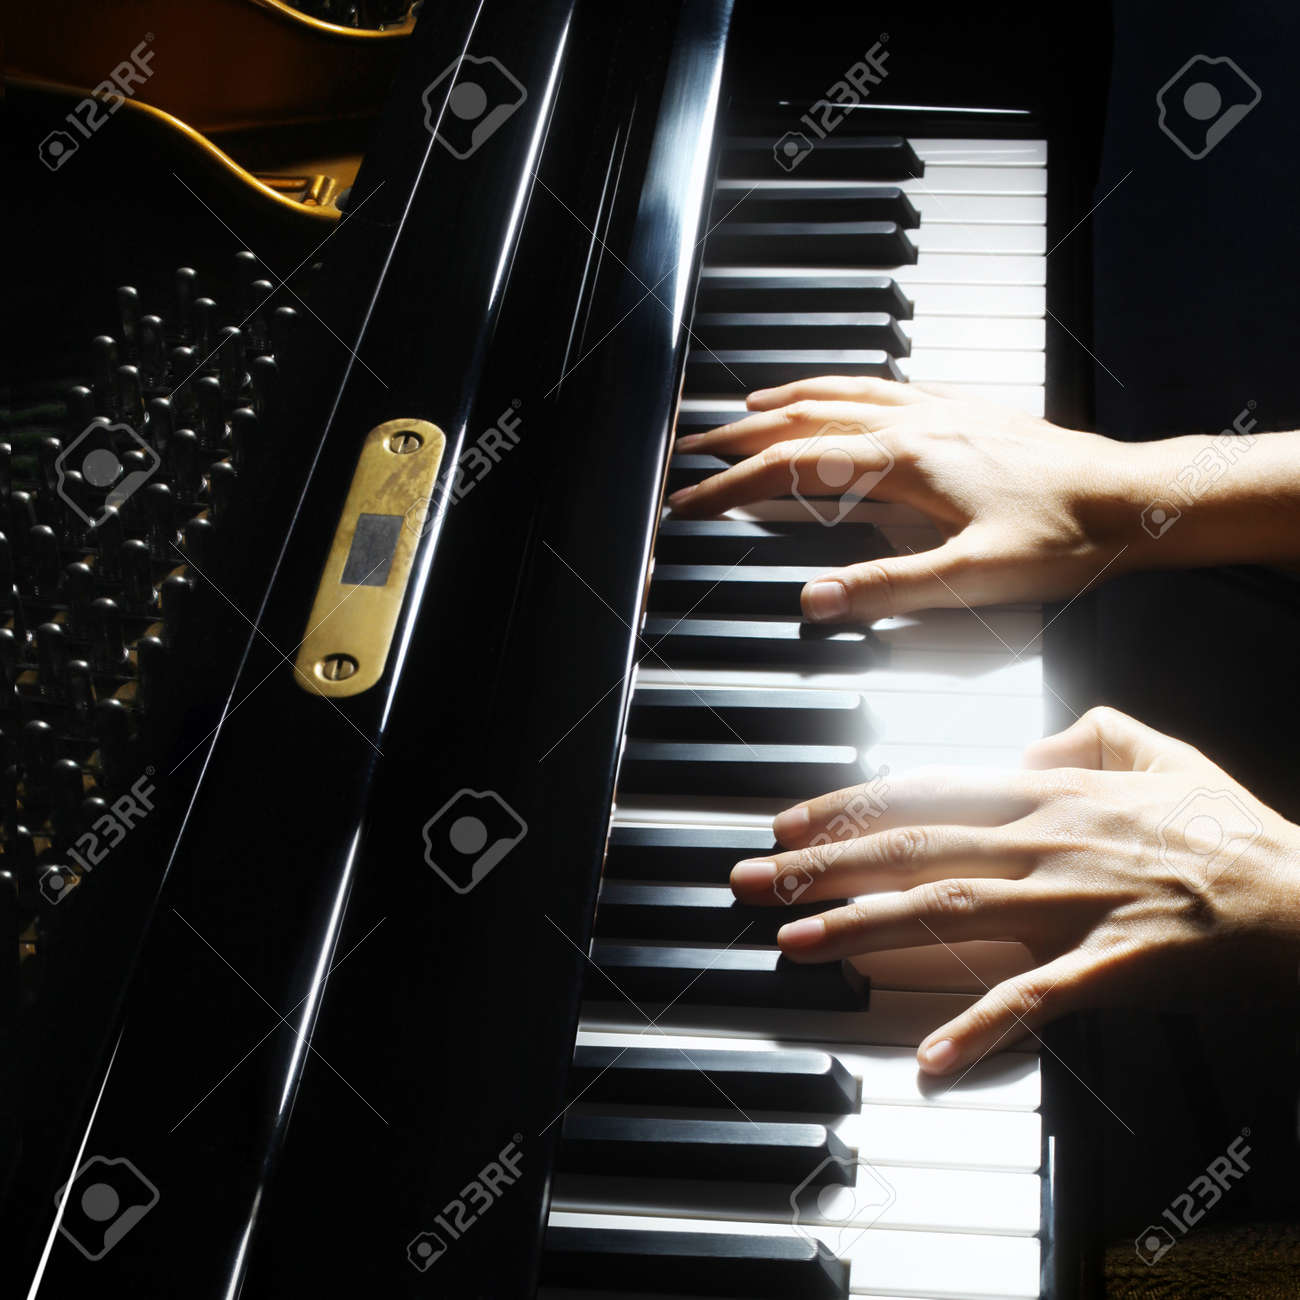 Piano hands pianist playing  Musical instruments details with player hand closeup Standard-Bild - 26131361